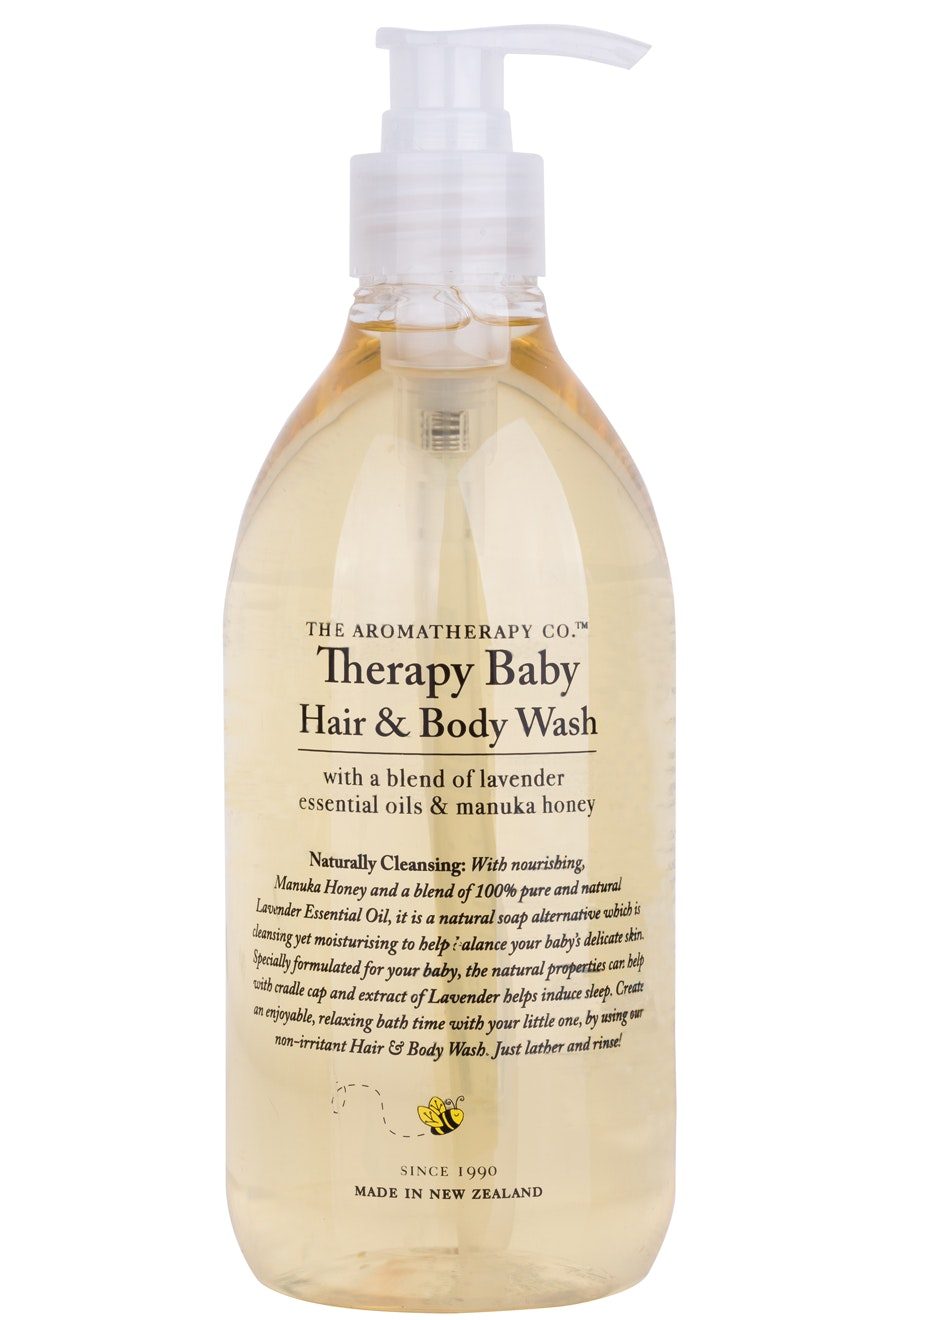 The Aromatherapy Co. Therapy Baby Hair & Body Wash